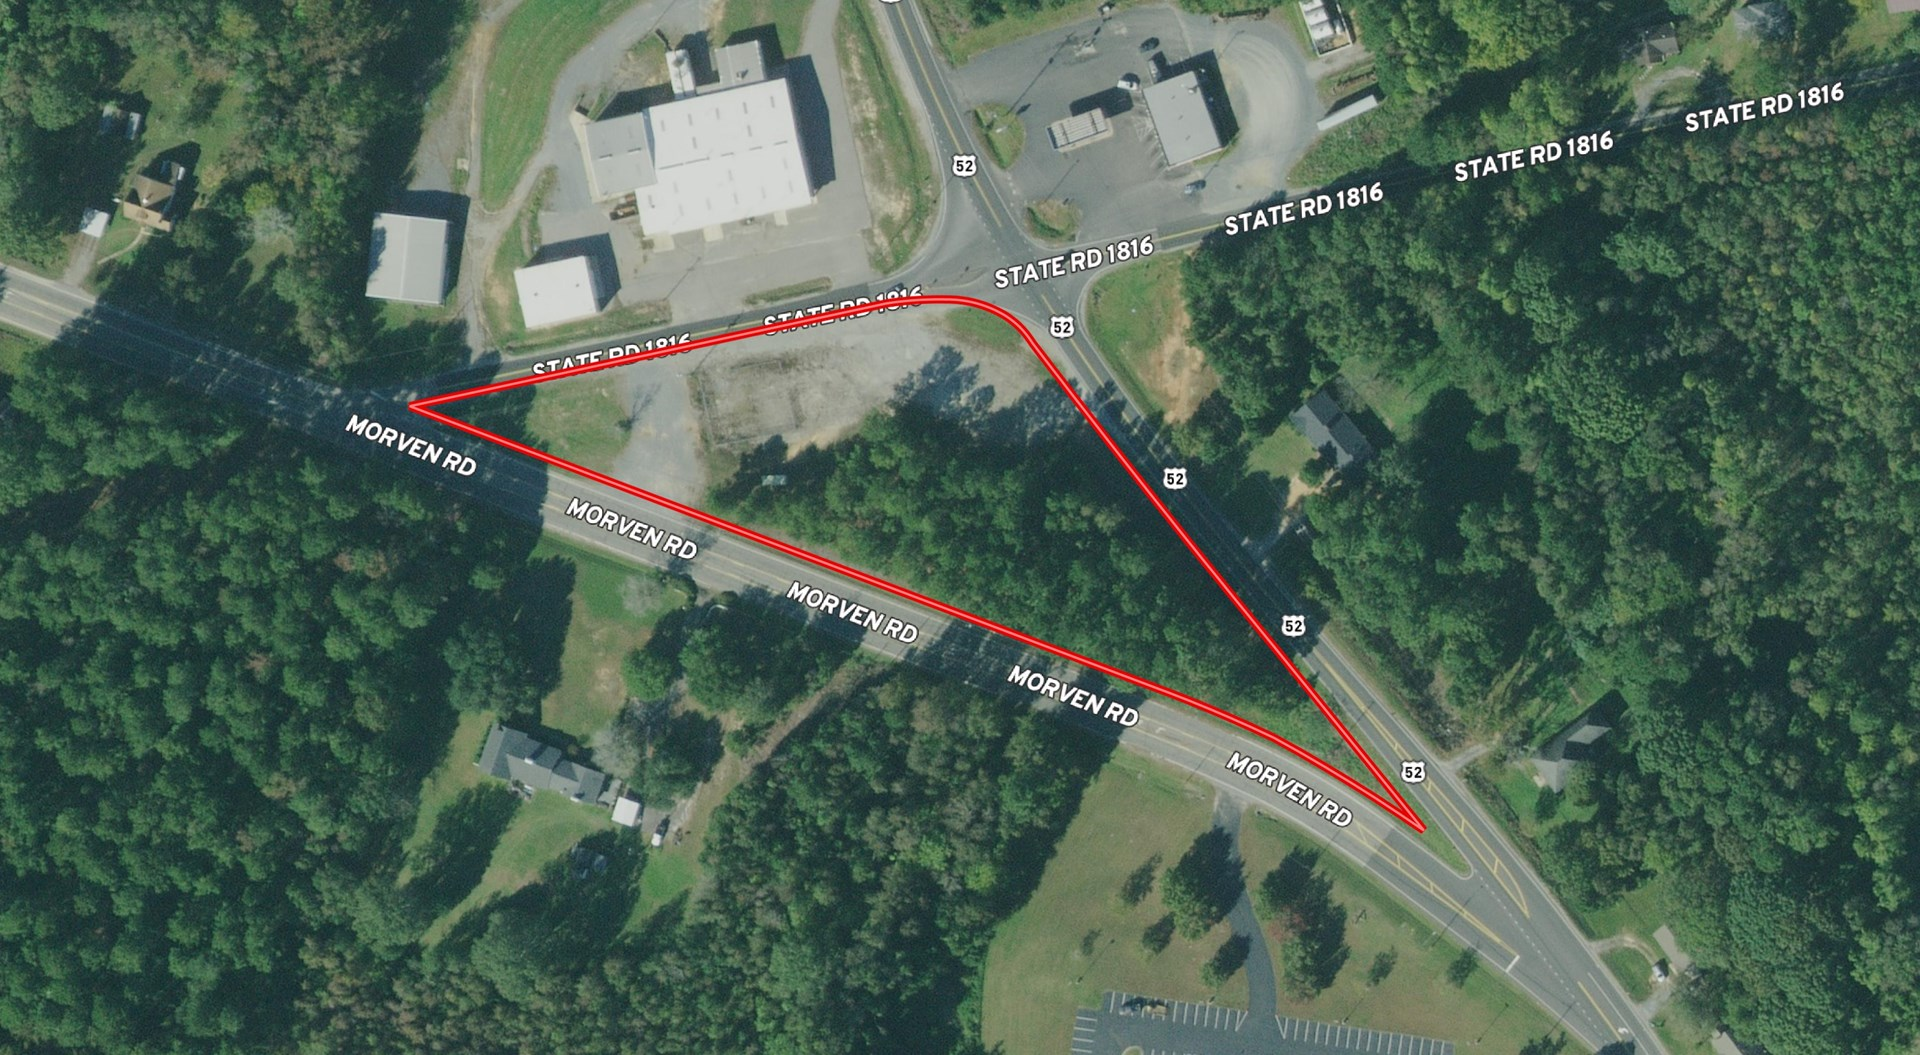 Commercial Lot For Sale in Wadesboro, NC